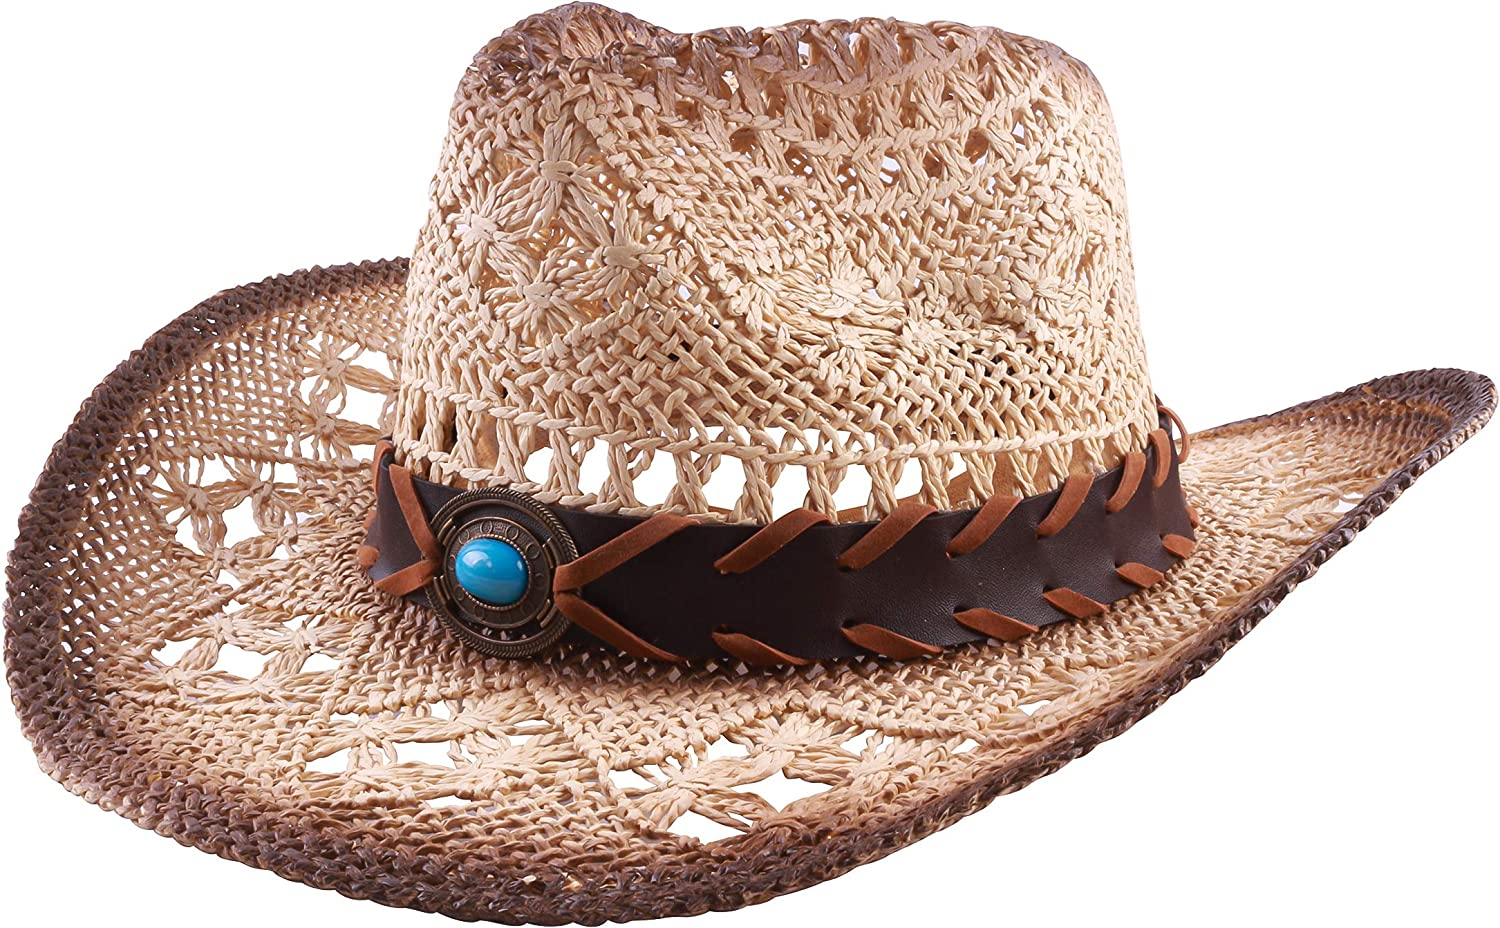 Western Outback Cowboy Hat Men's Style Canvas Straw Felt Max 56% OFF Max 66% OFF Women's